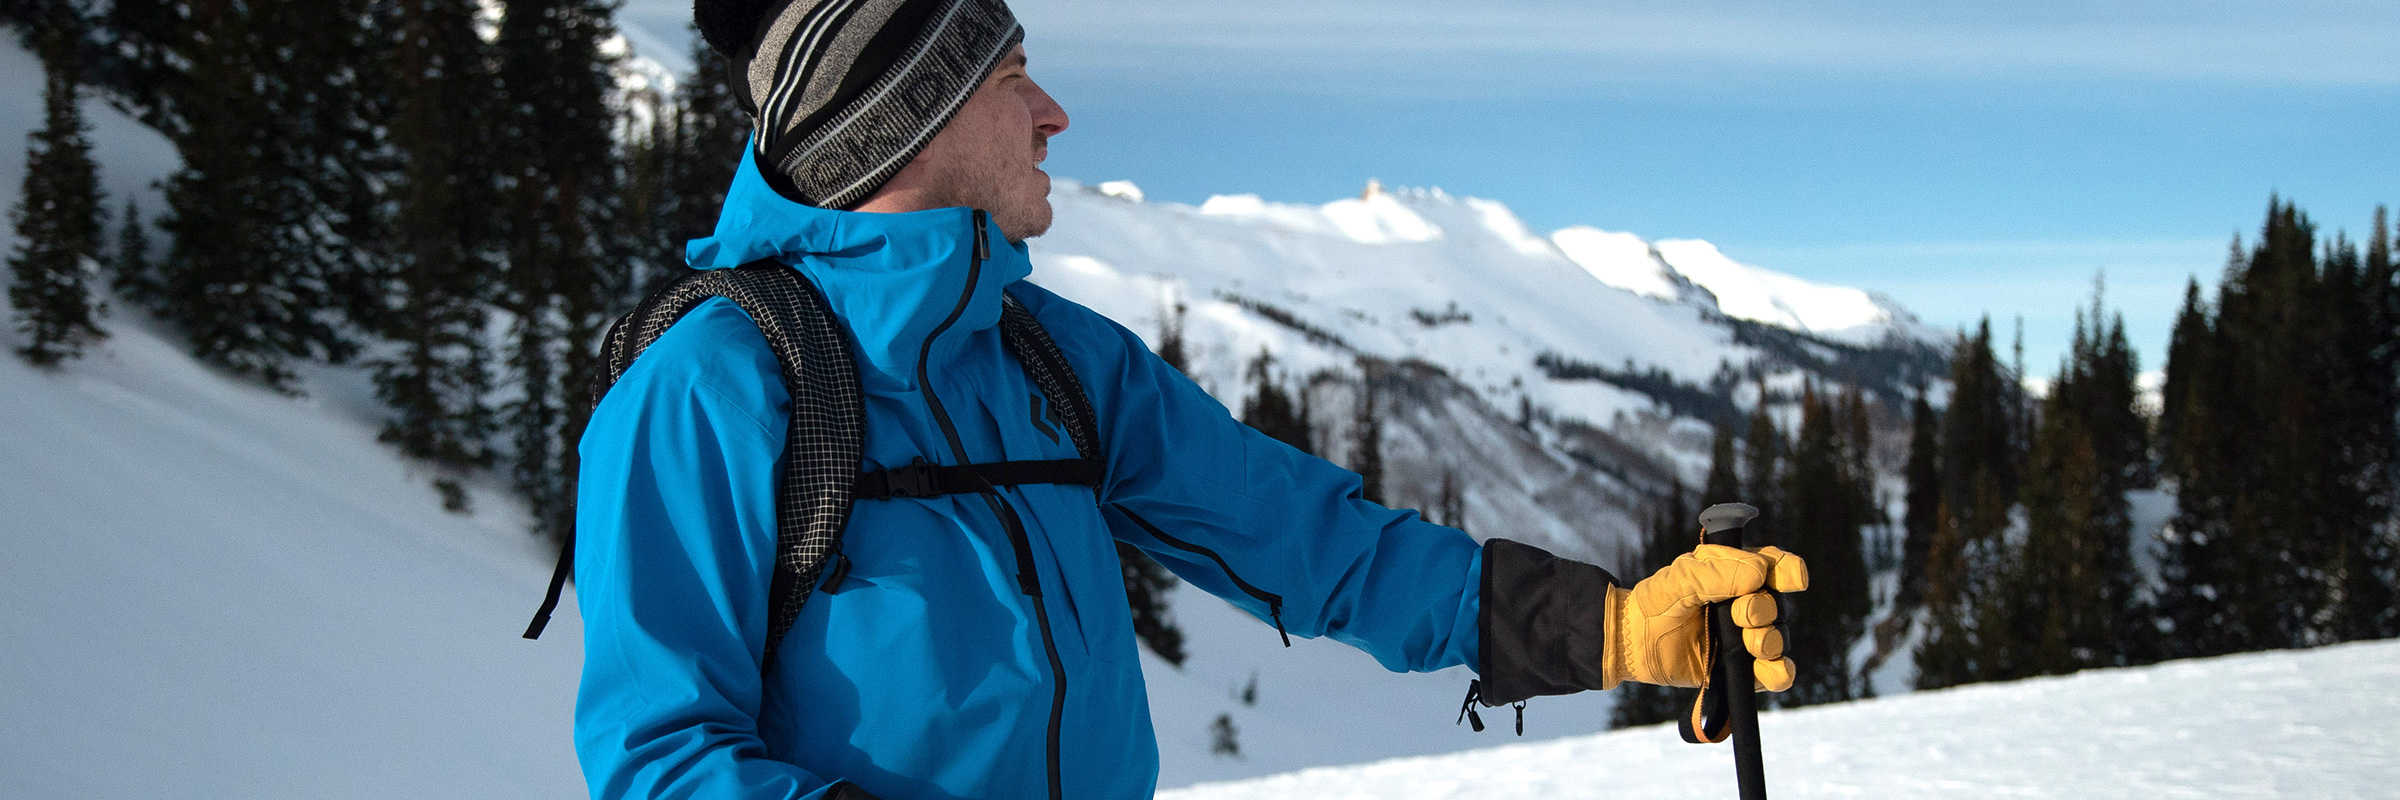 Revue de la coquille pour le Ski Recon Stretch de Black Diamond